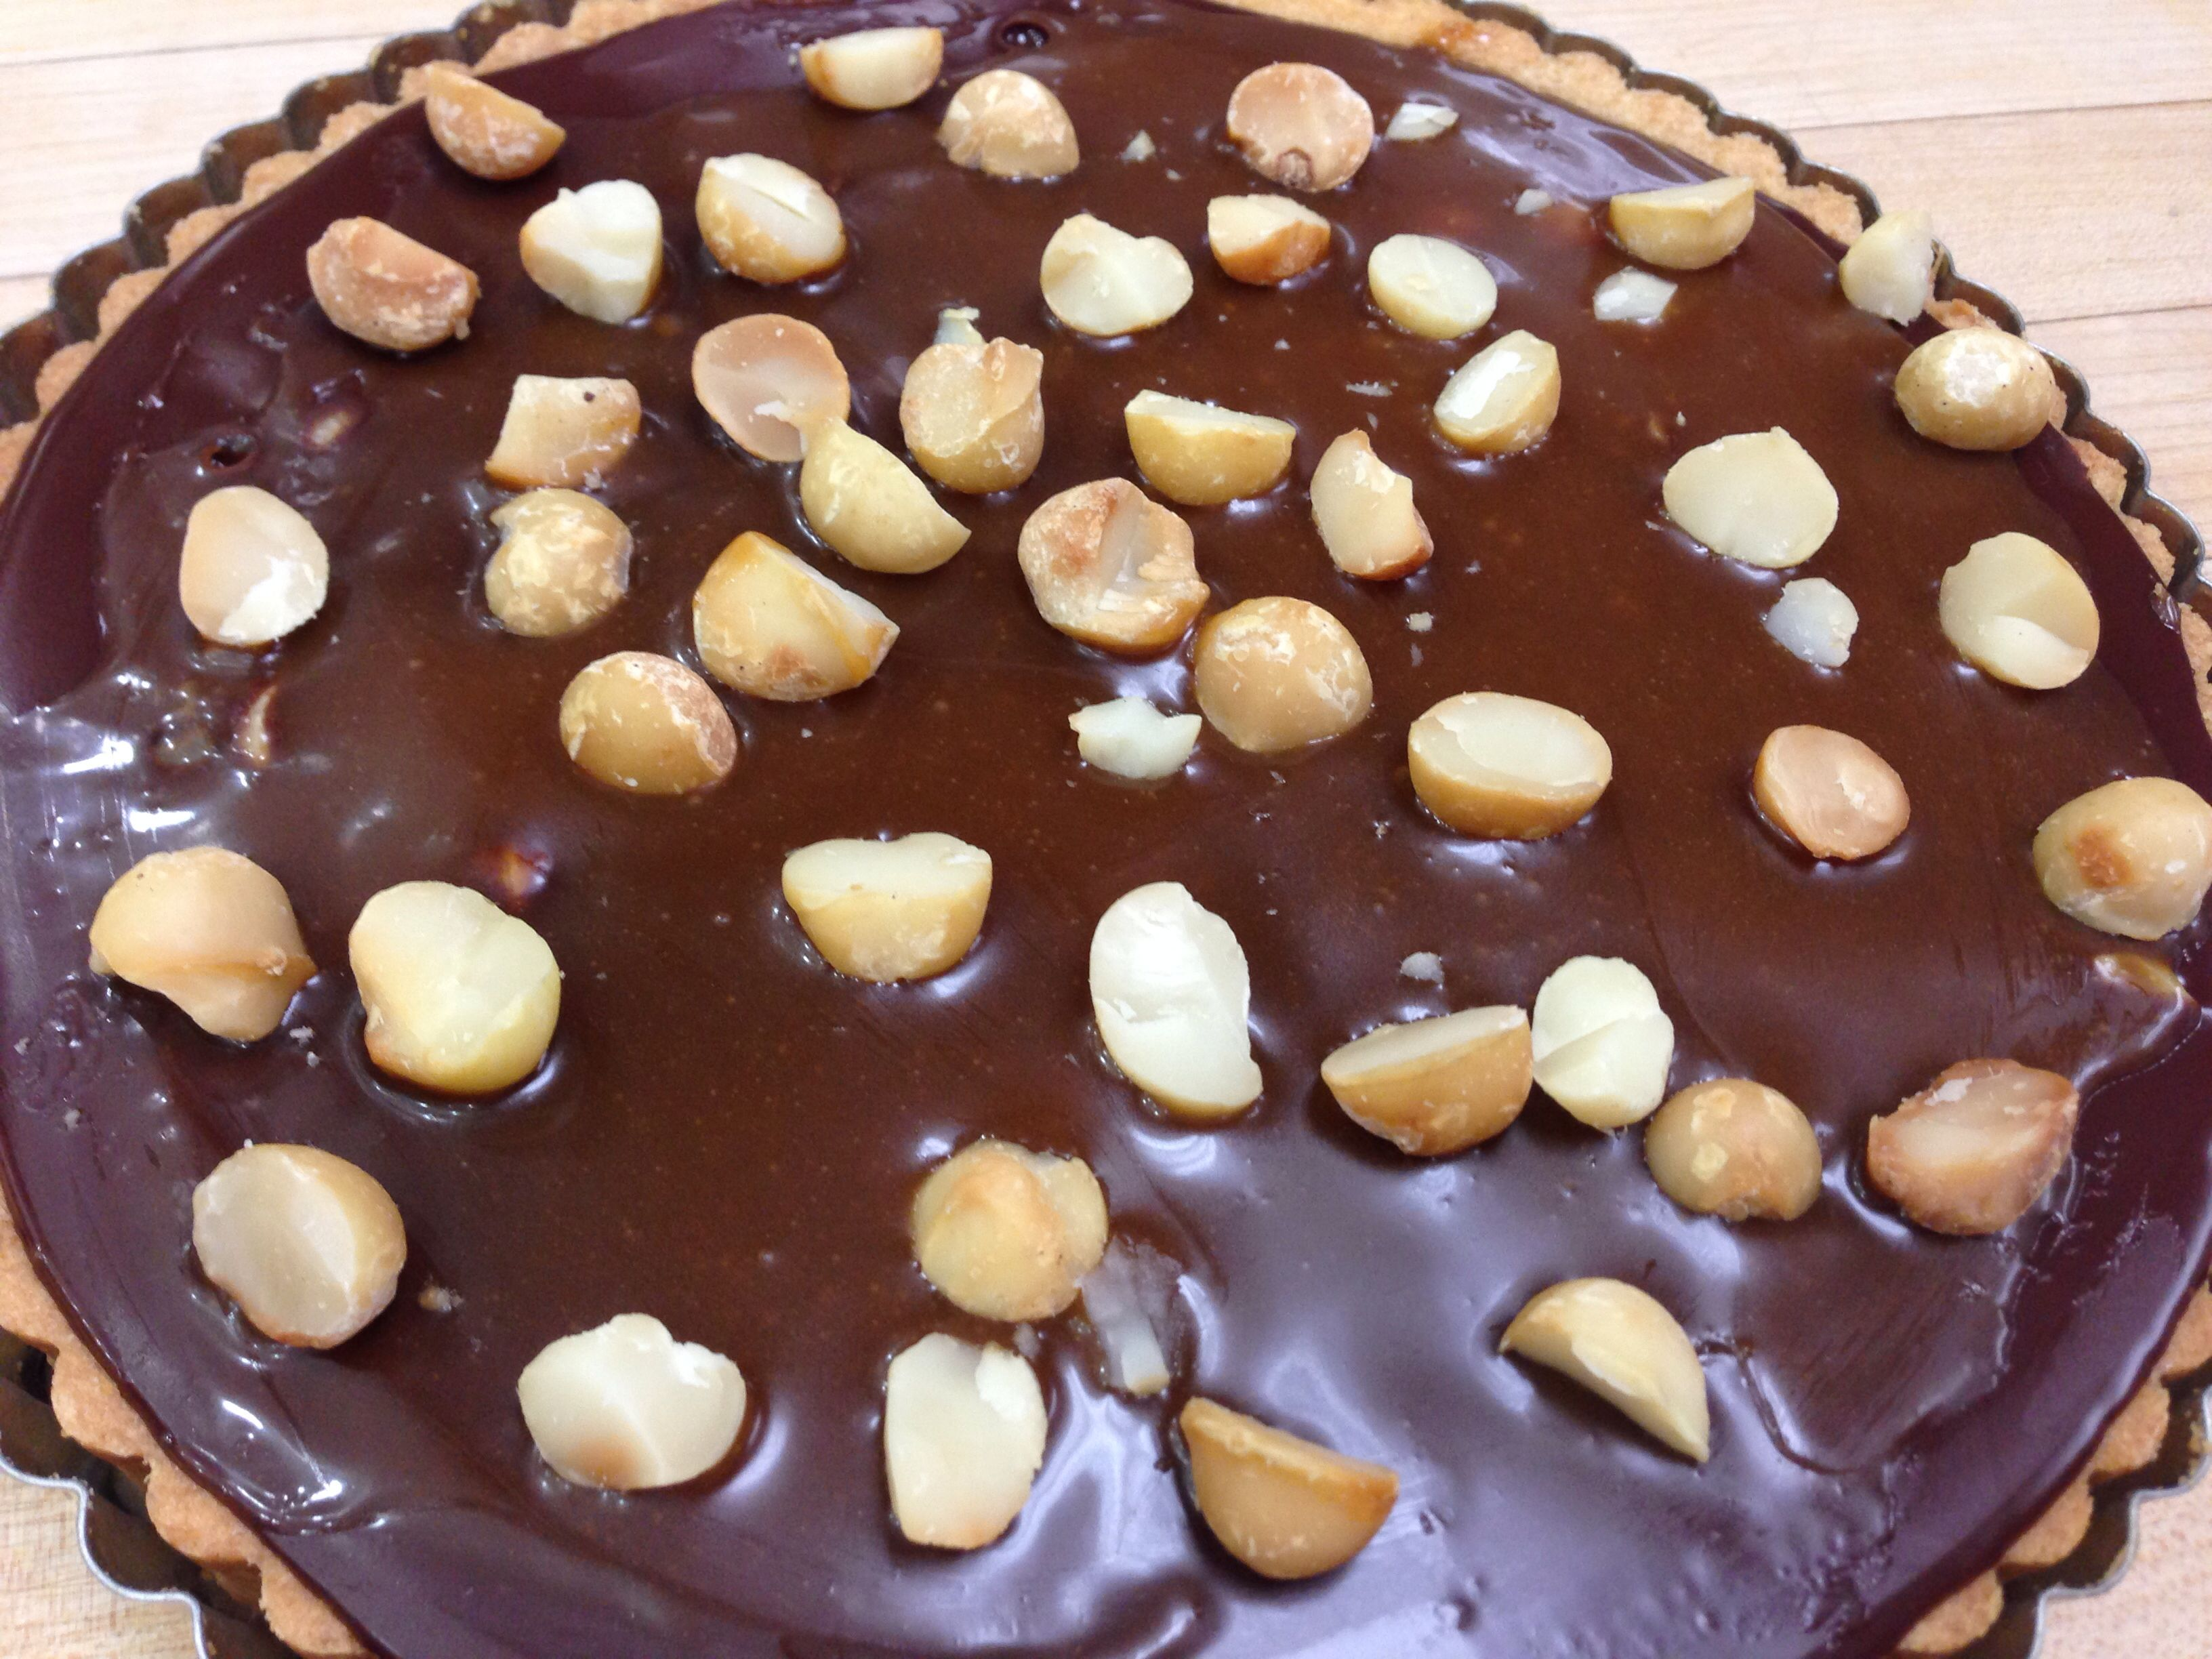 Chocolate macadamia nut caramel tart | The Culinary Institute of Amer ...